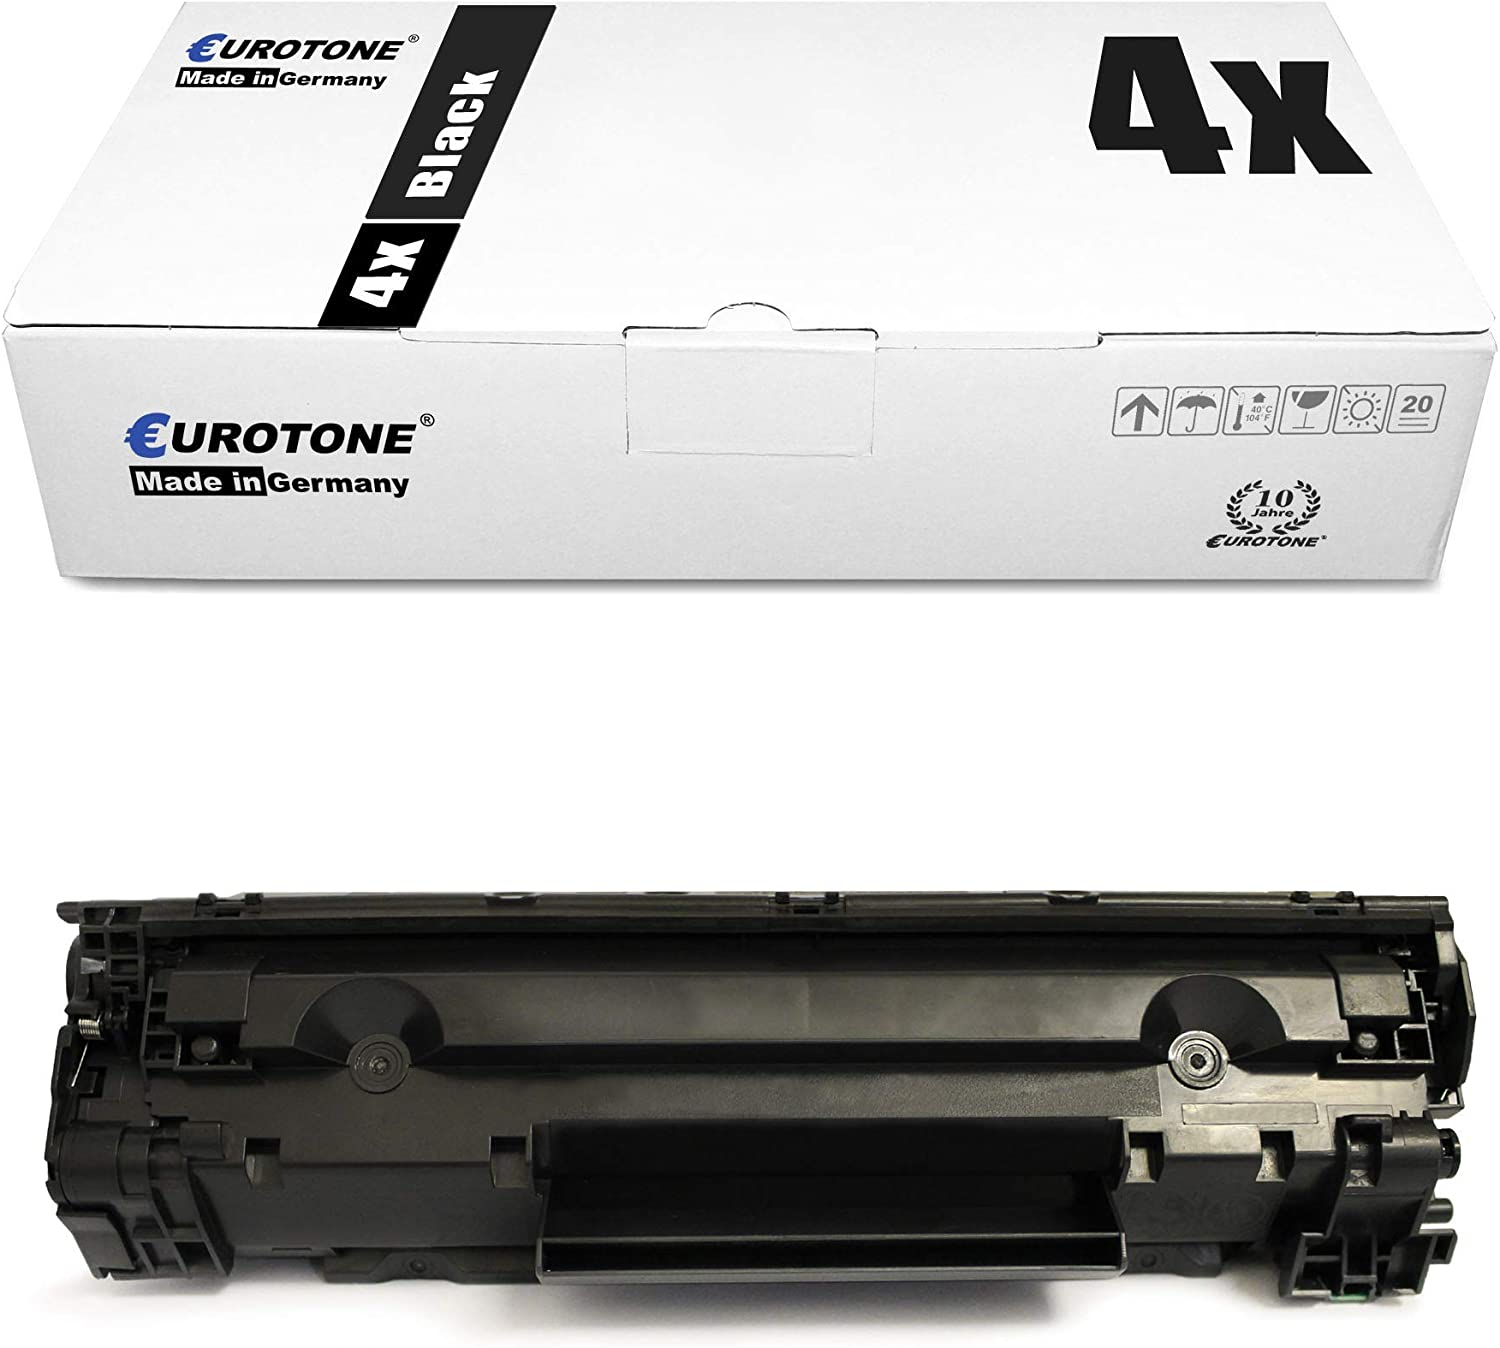 Eurotone Remanufactured Toner for HP Laserjet Professional P 1566 1567 1568 1569 1601 1603 1604 1605 1606 1607 1608 1609 dn n Replaces CE278A 78A